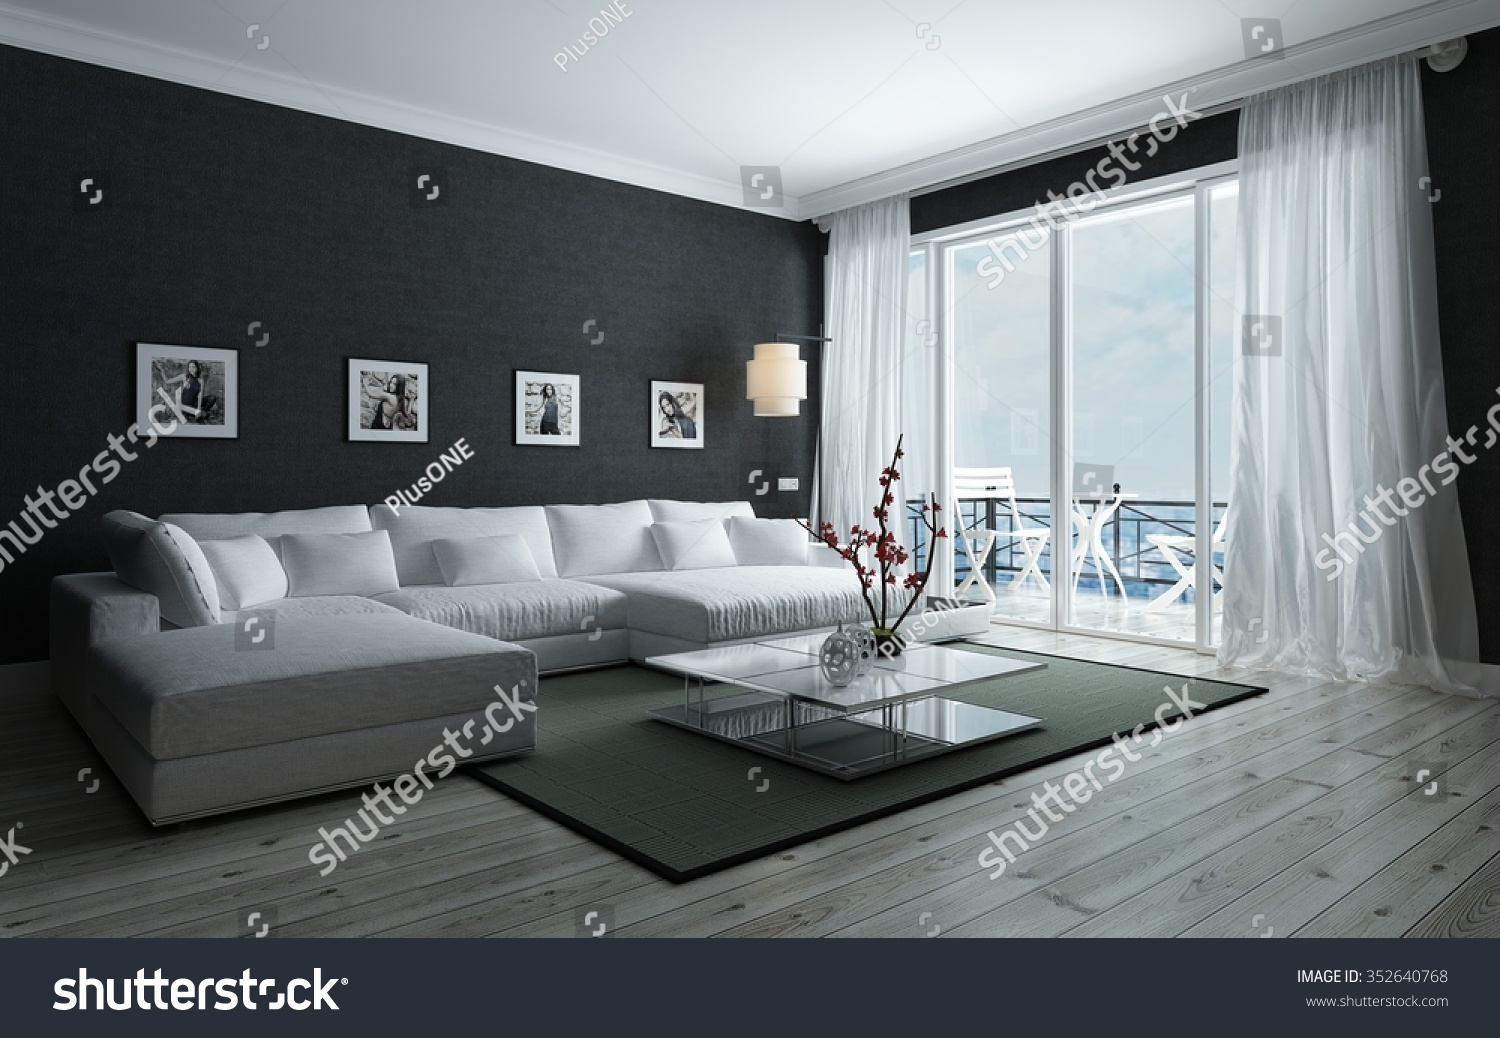 contemporary black white living room stylish stock illustration